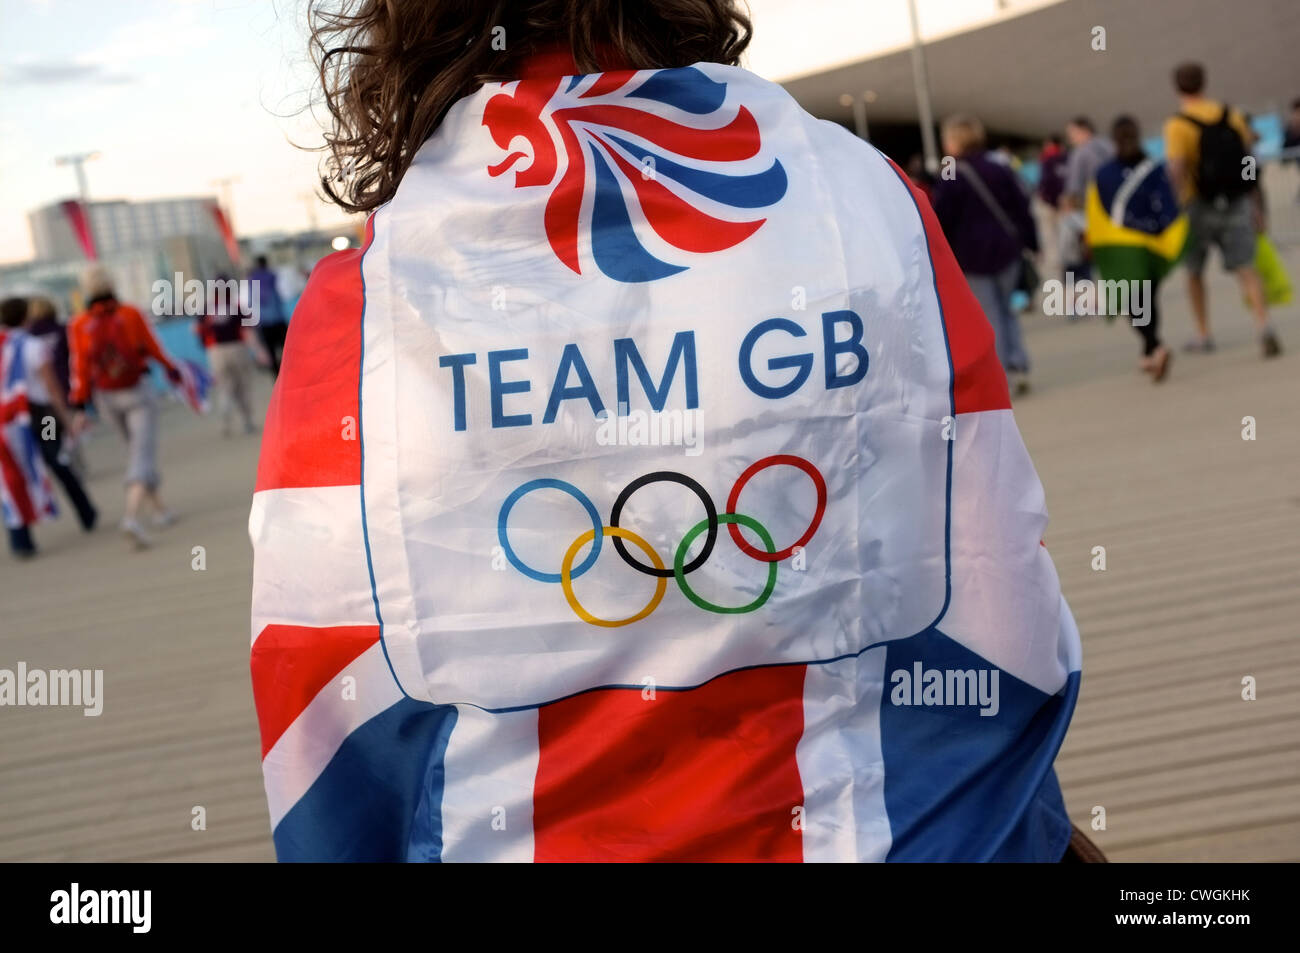 Supporter wrapped in Team GB flag - Stock Image